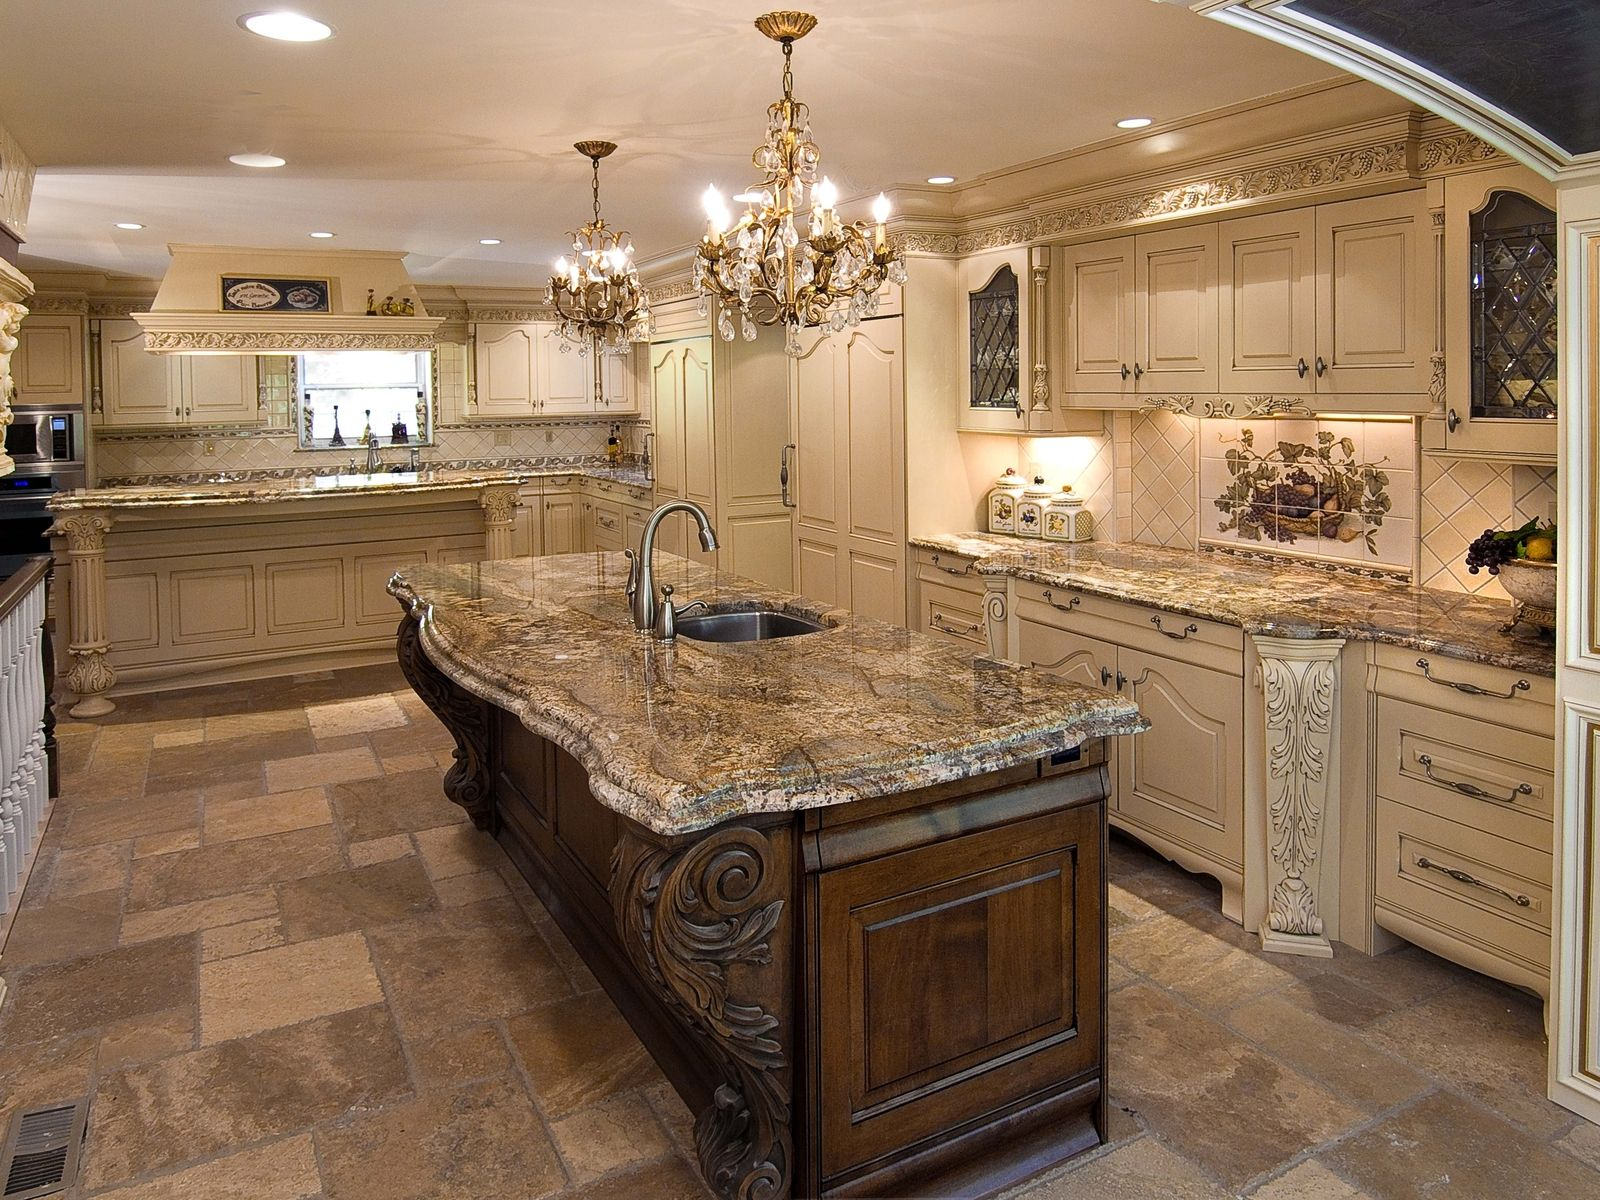 Ornate Kitchen Cabinets Custom Made Ornate Kitchen By: custom kitchens pictures